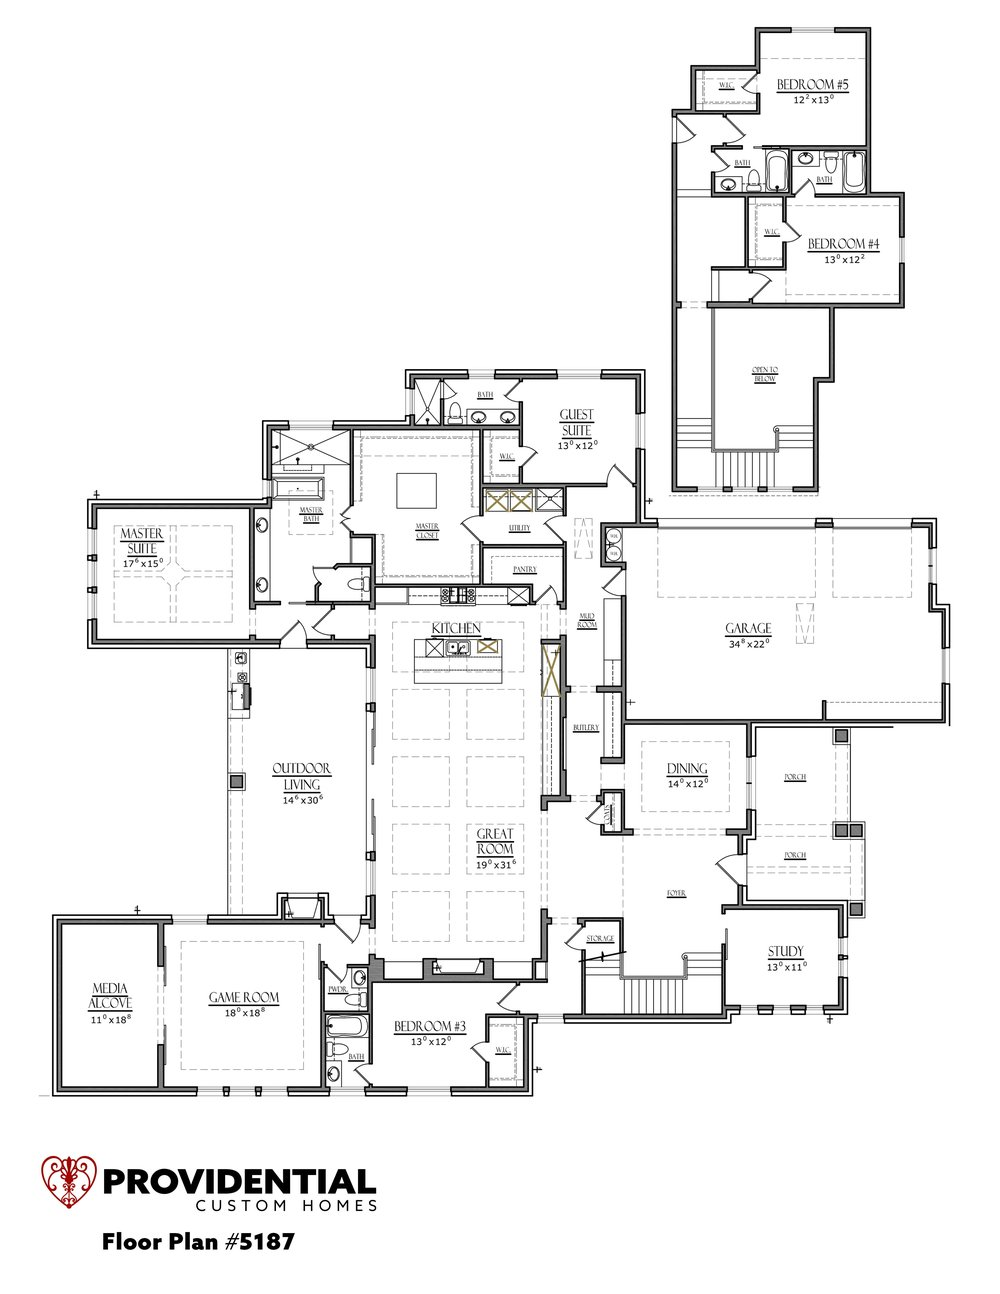 The FLOOR PLAN #5187.jpg